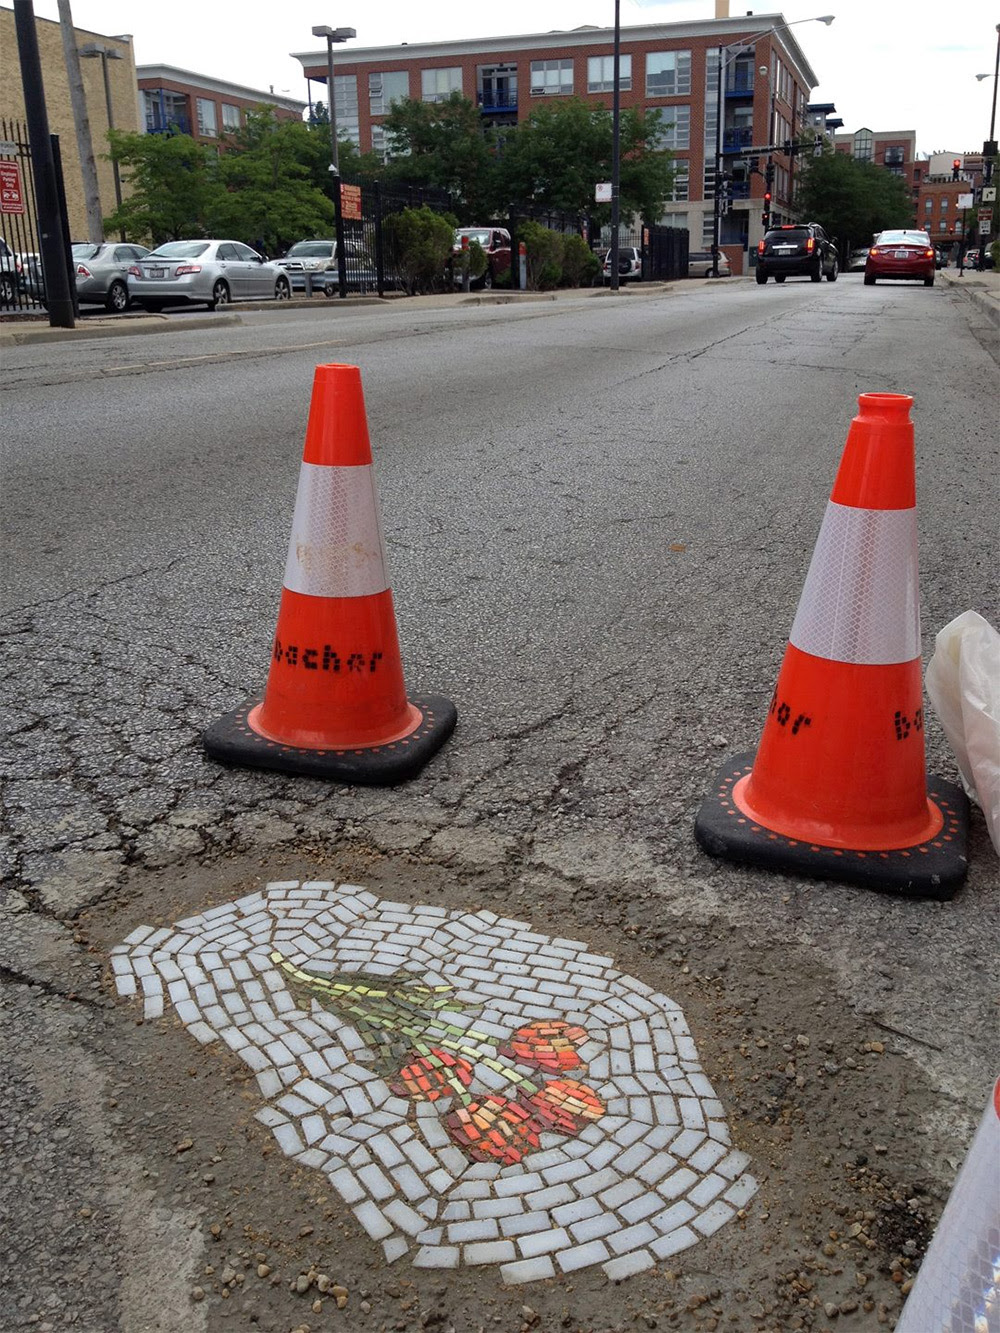 http://www.thisiscolossal.com/2014/10/guerilla-mosaic-artist-now-filling-chicago-potholes-with-flowers/